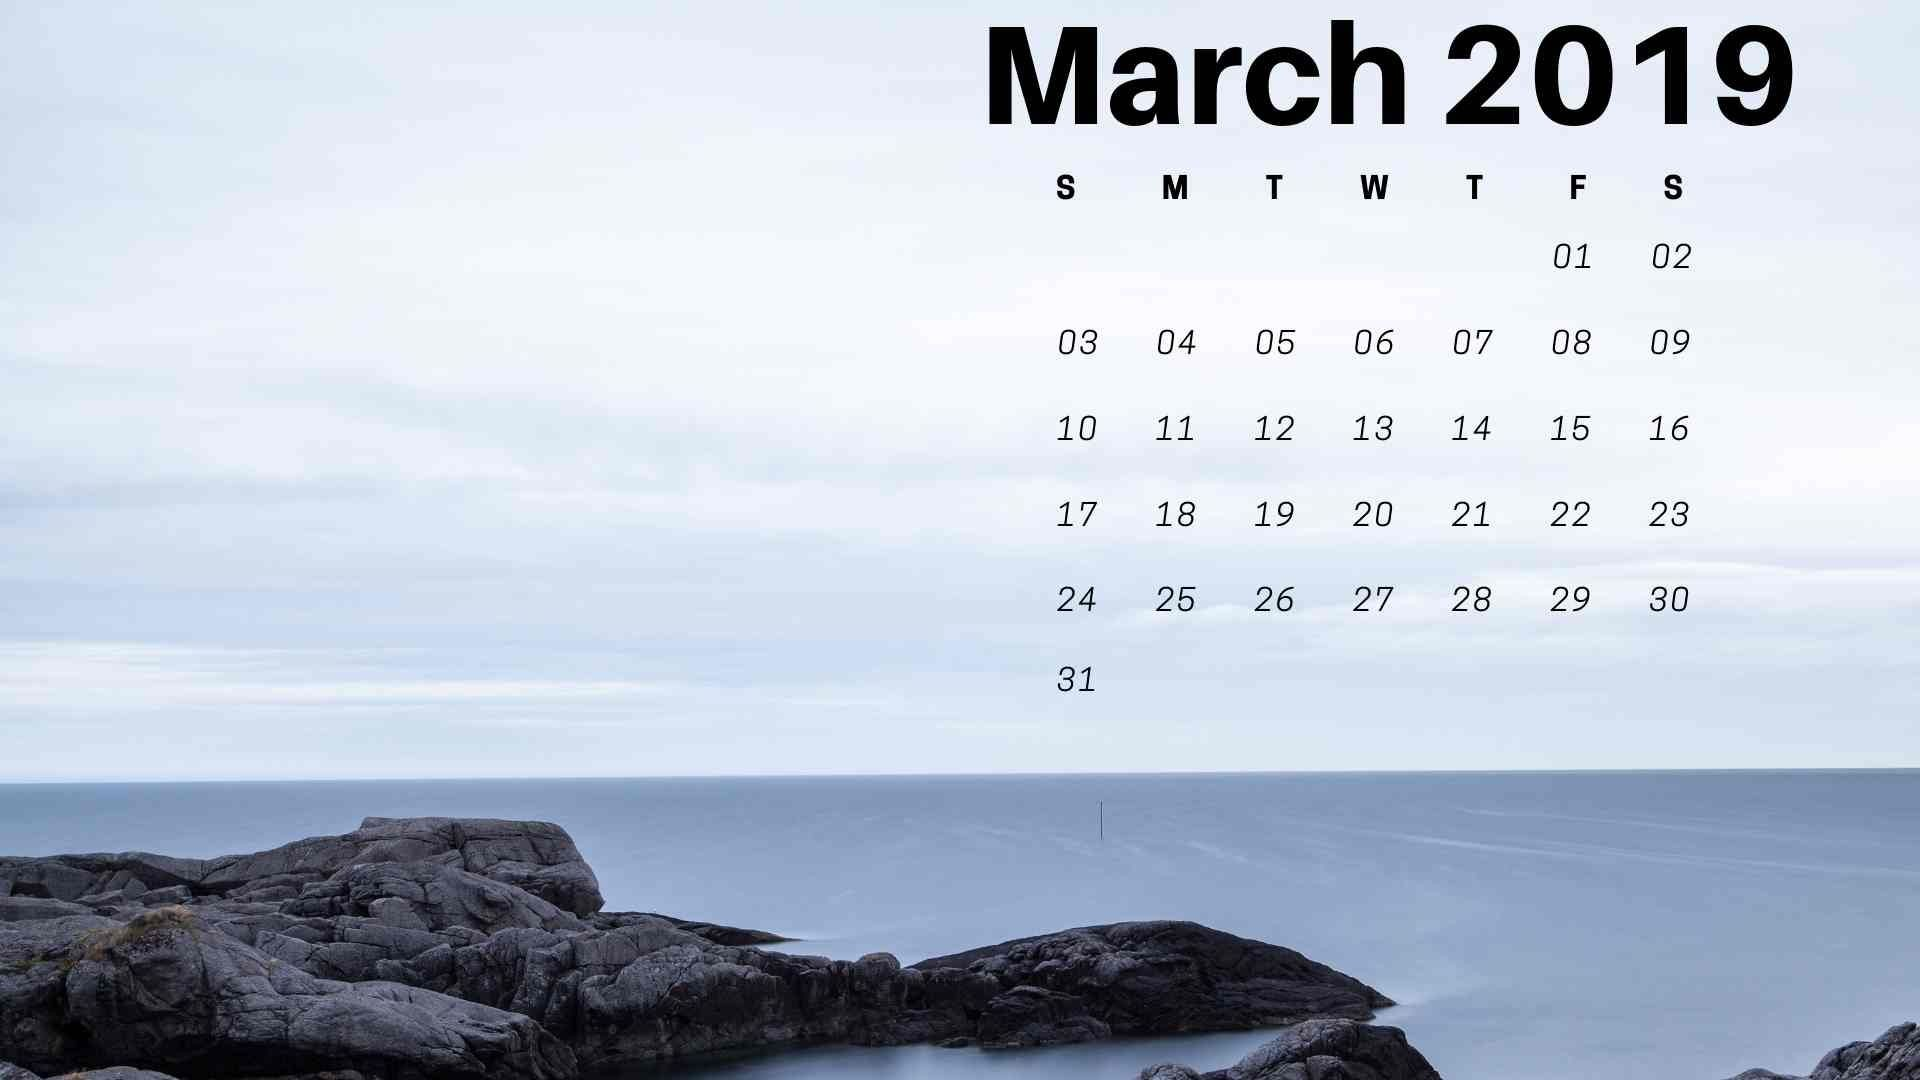 March Calendar Blank 2019 Más Recientes March 2019 Calendar Wallpaper Desktop March Calendar Calenda2019 Of March Calendar Blank 2019 Más Recientemente Liberado Art Prints Lunar Calendar 2019